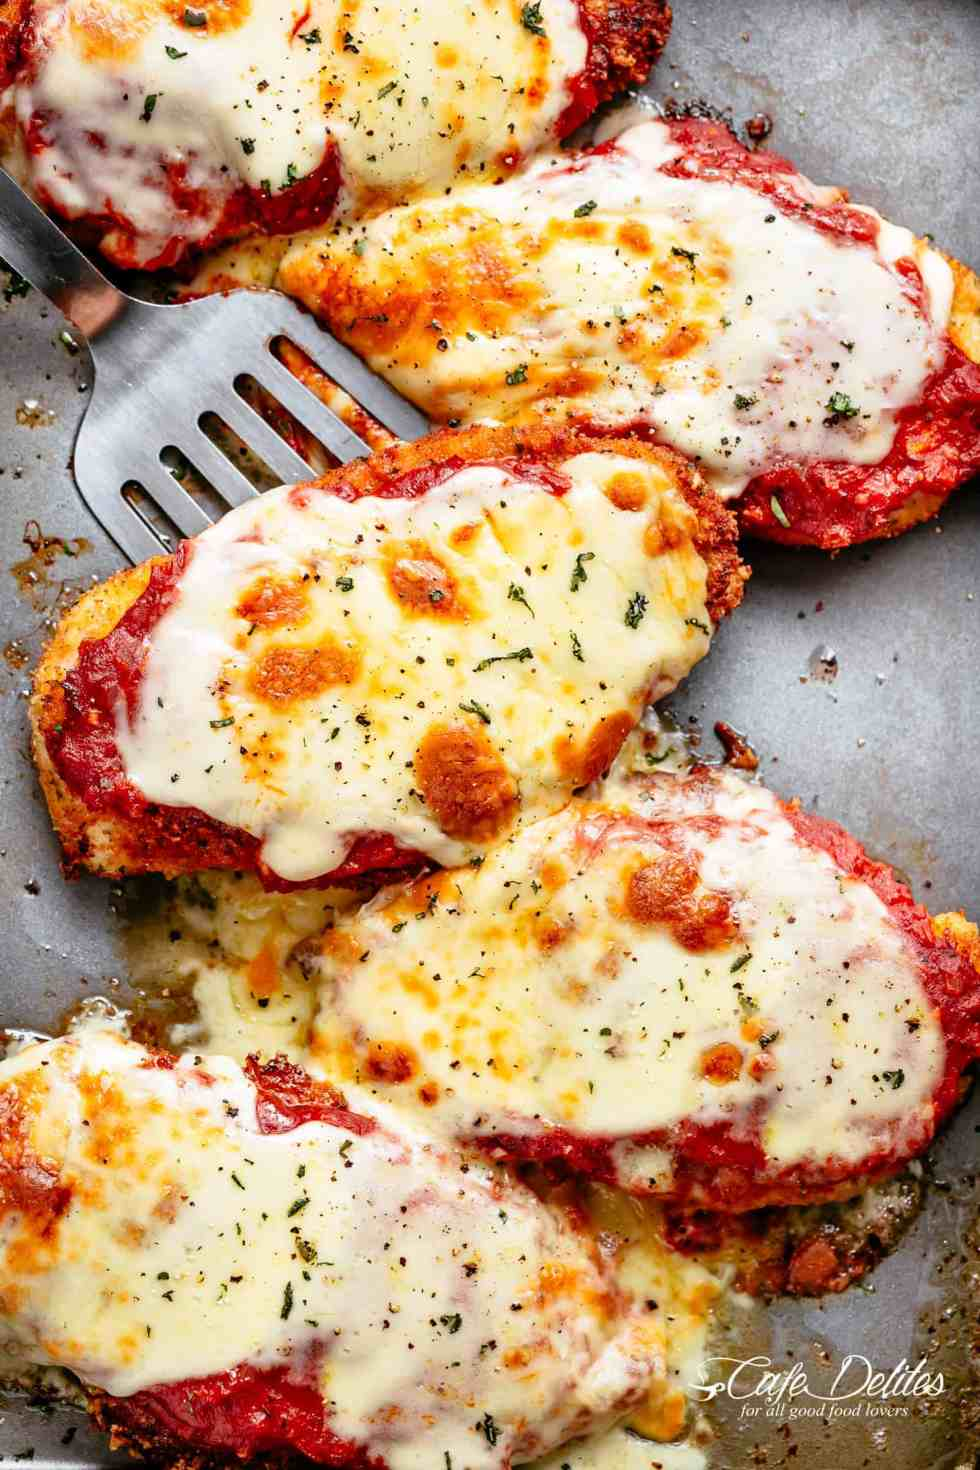 The Best Chicken Parmesan with a deliciously crispy breadcrumb coating, smothered in a rich homemade tomato sauce and melted mozzarella cheese! This is here best Chicken Parmesan you will ever make! Simple to make and worth every minute. If you love a crispy crumb coating vs soggy crumb, look no further! | cafedelites.com